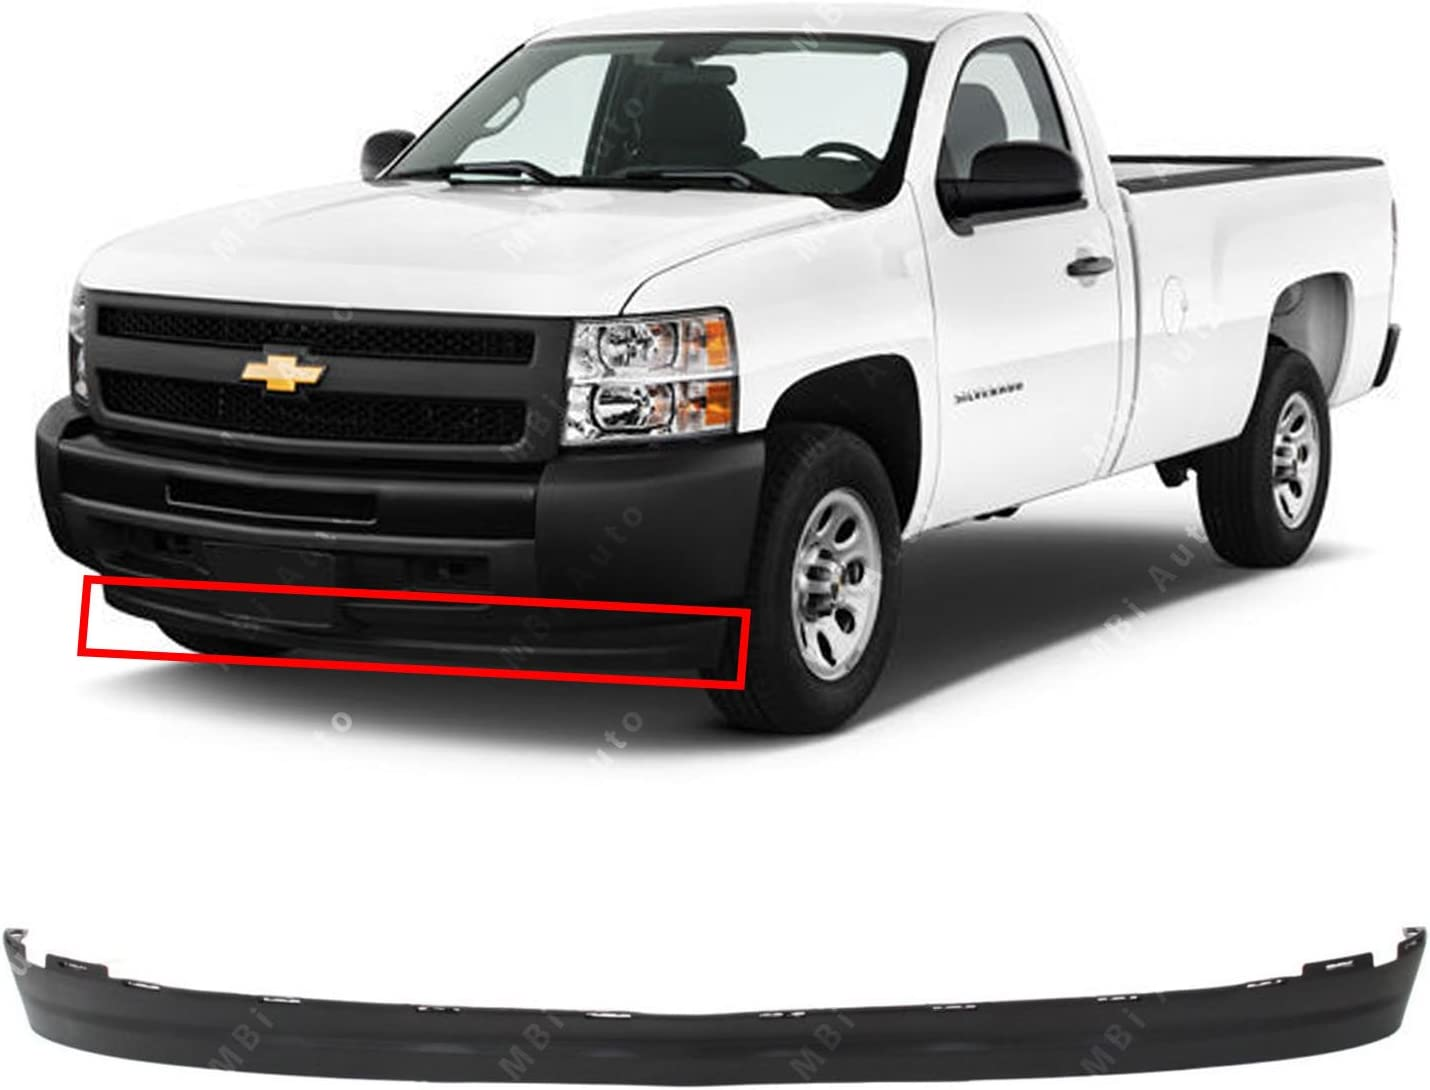 NEW Textured Bumper Lower Air Deflector for 2007-2013 Chevy Silverado 1500 07-13